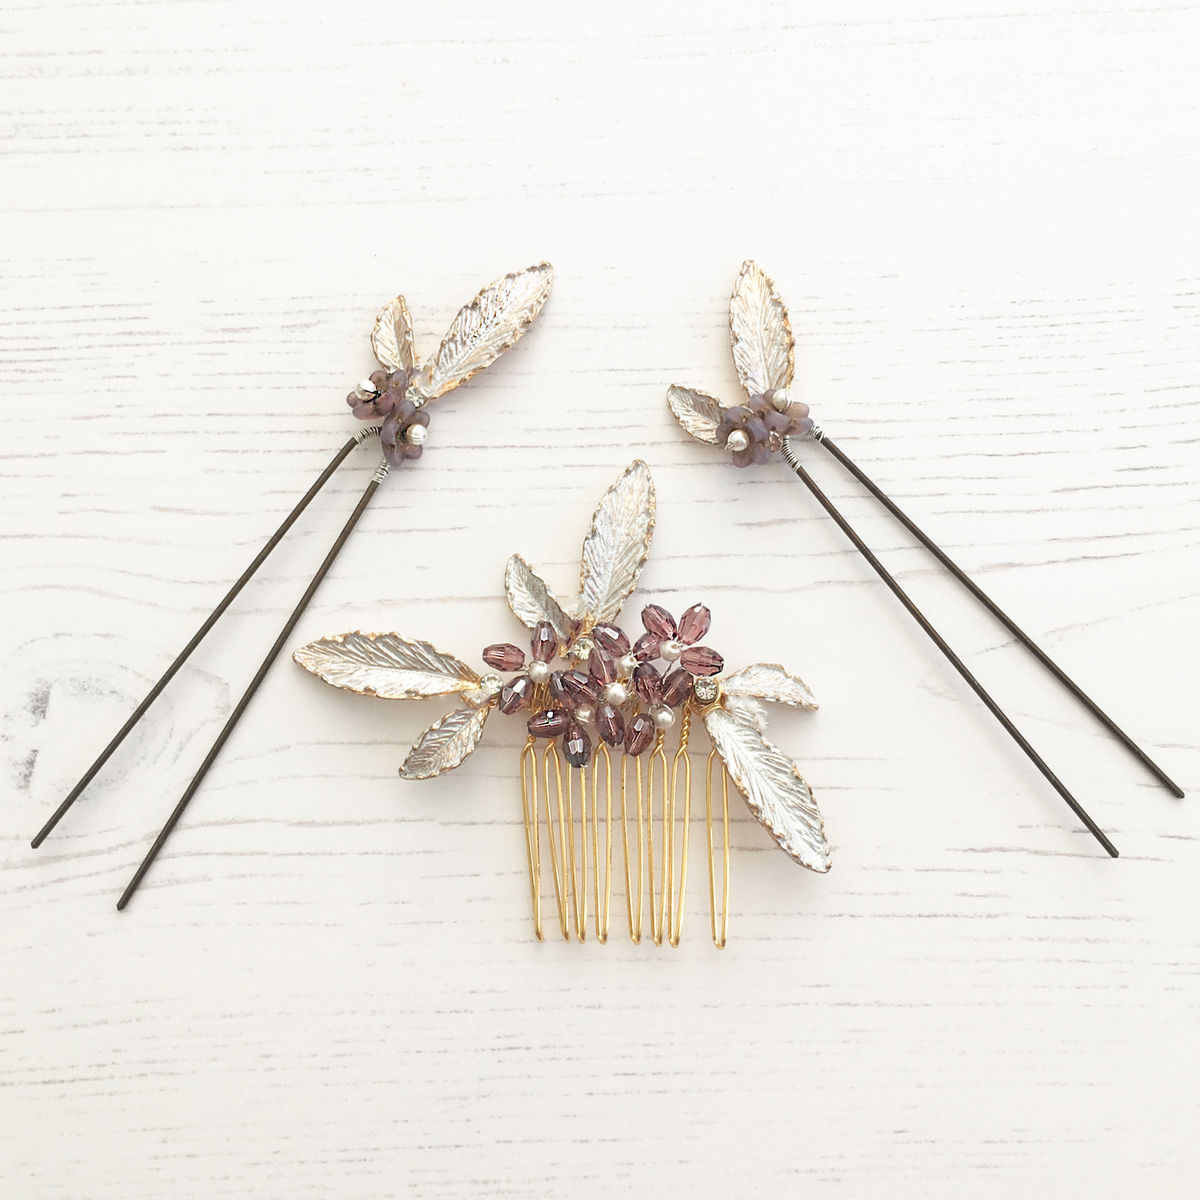 Fianna Comb and Pin set - product images  of